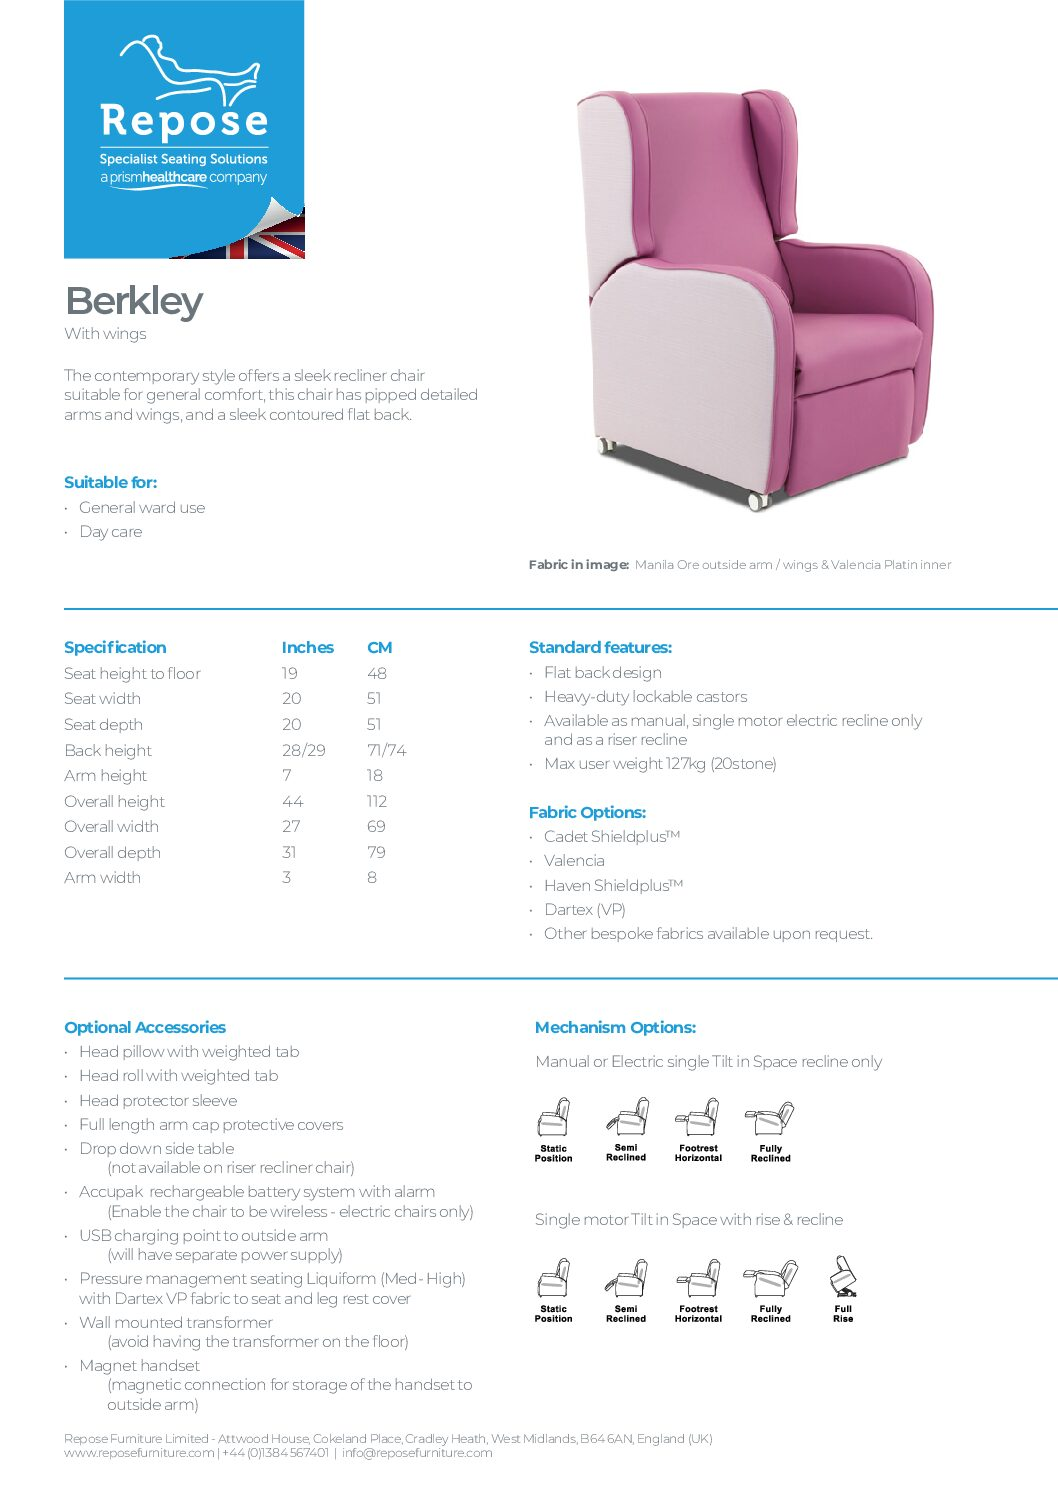 PDF specification Berkley with wings v7 pdf Repose Furniture Downloads and Brochure Request